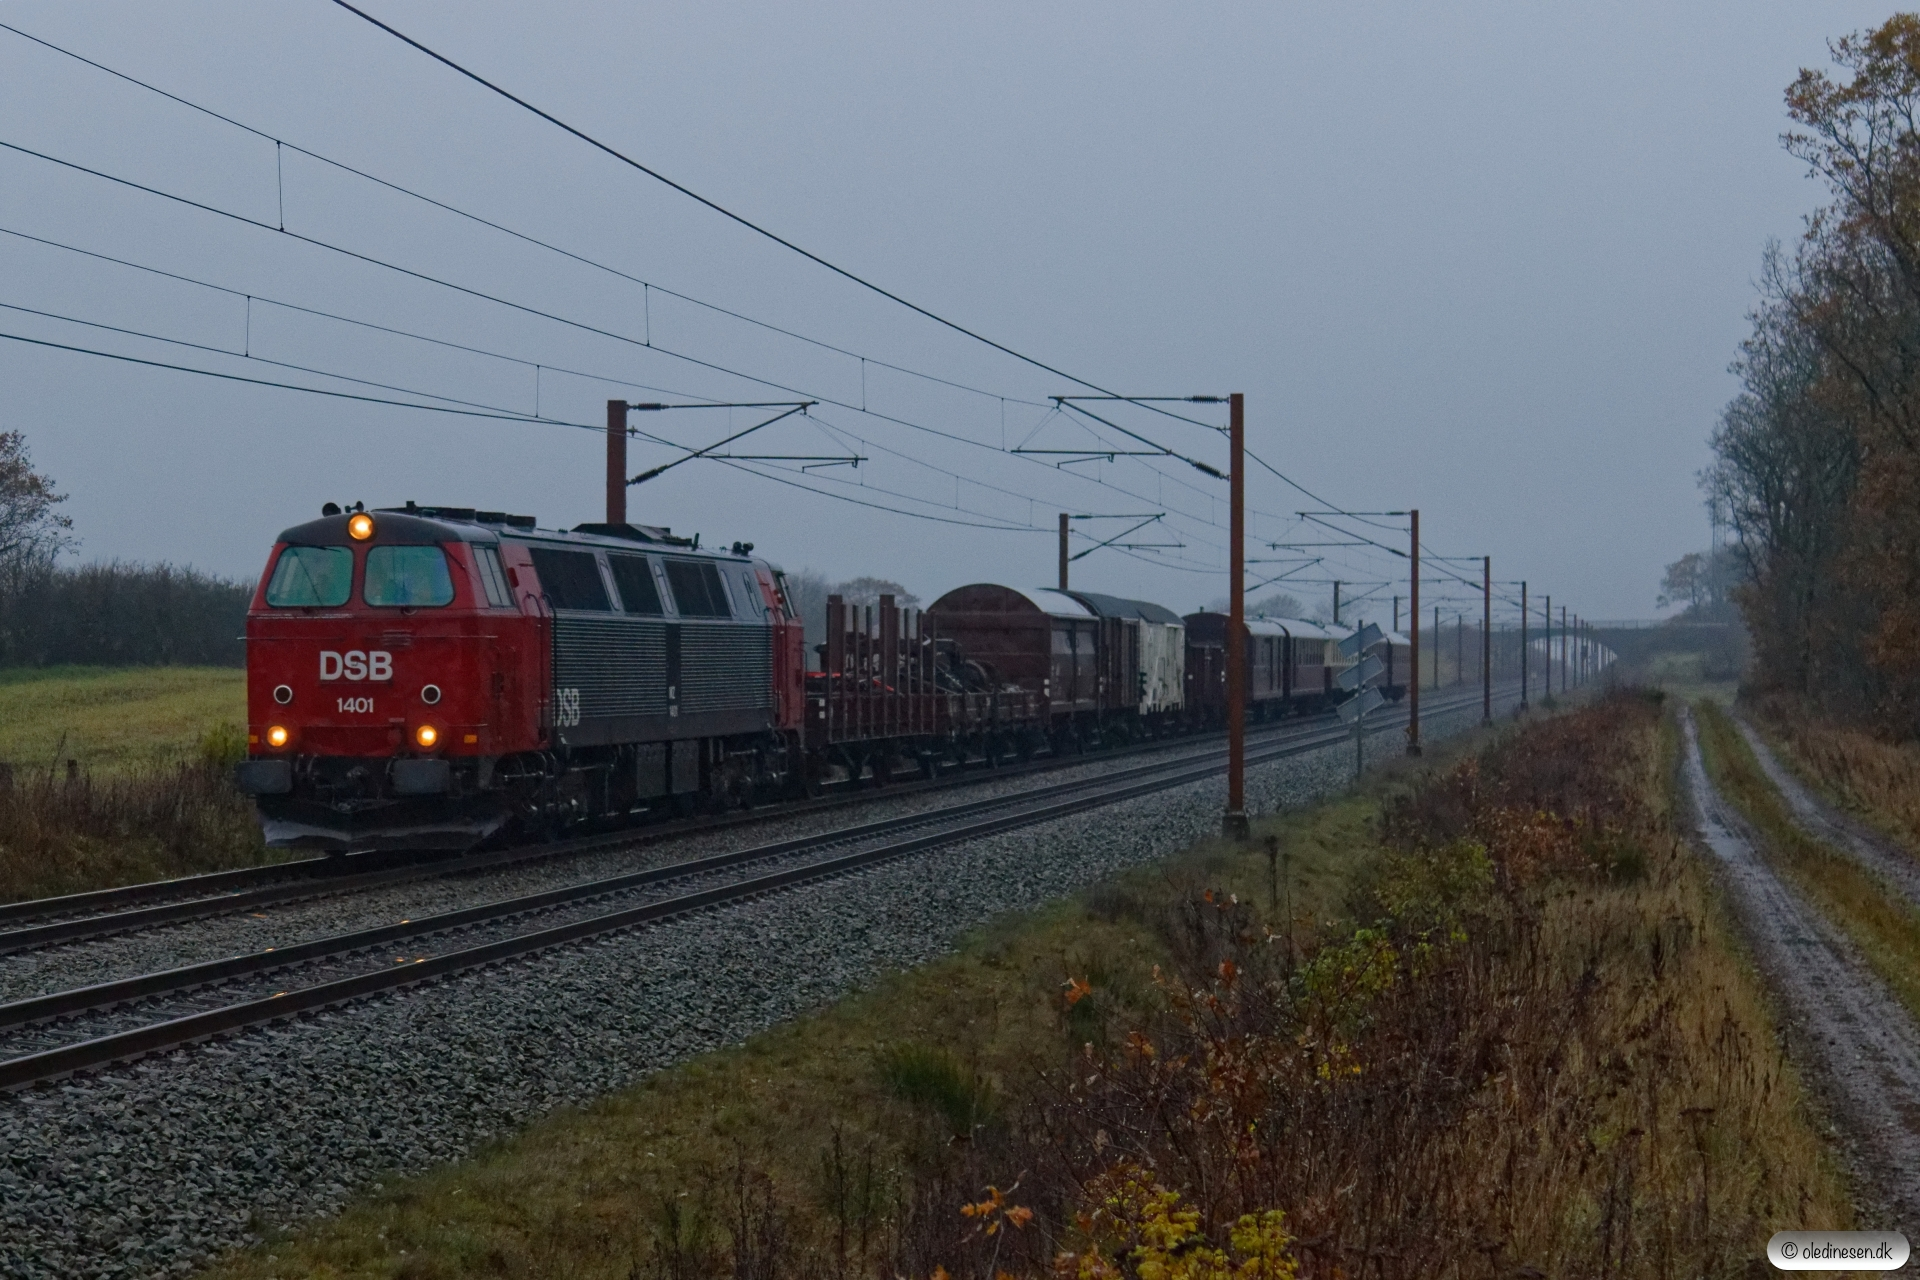 DSB MZ 1401 med VM 6495 Od-Pa. Km 50,2 Fa (Farris-Sommersted) 16.11.2019.